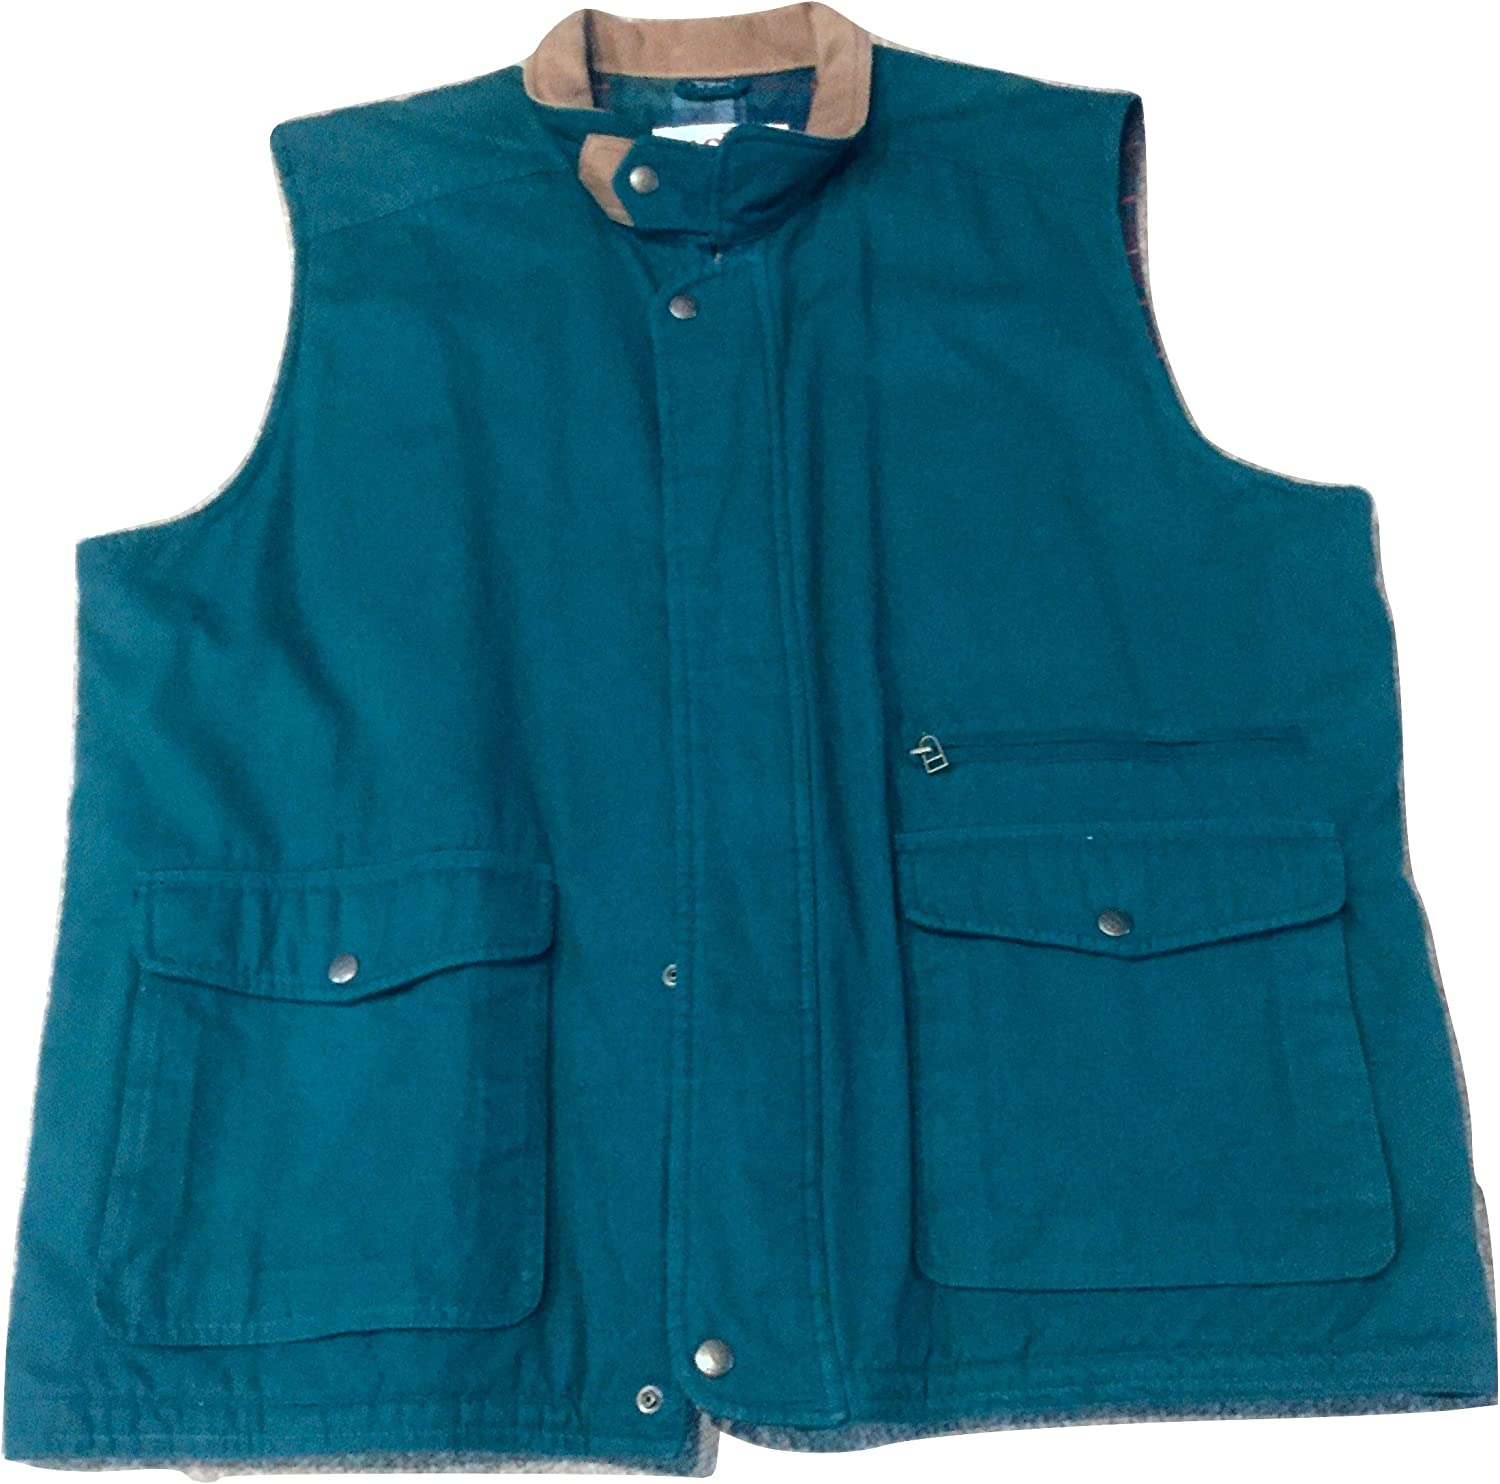 Pacific Trail Lined Canvas Vest with Leather Collar Outerwear Vest